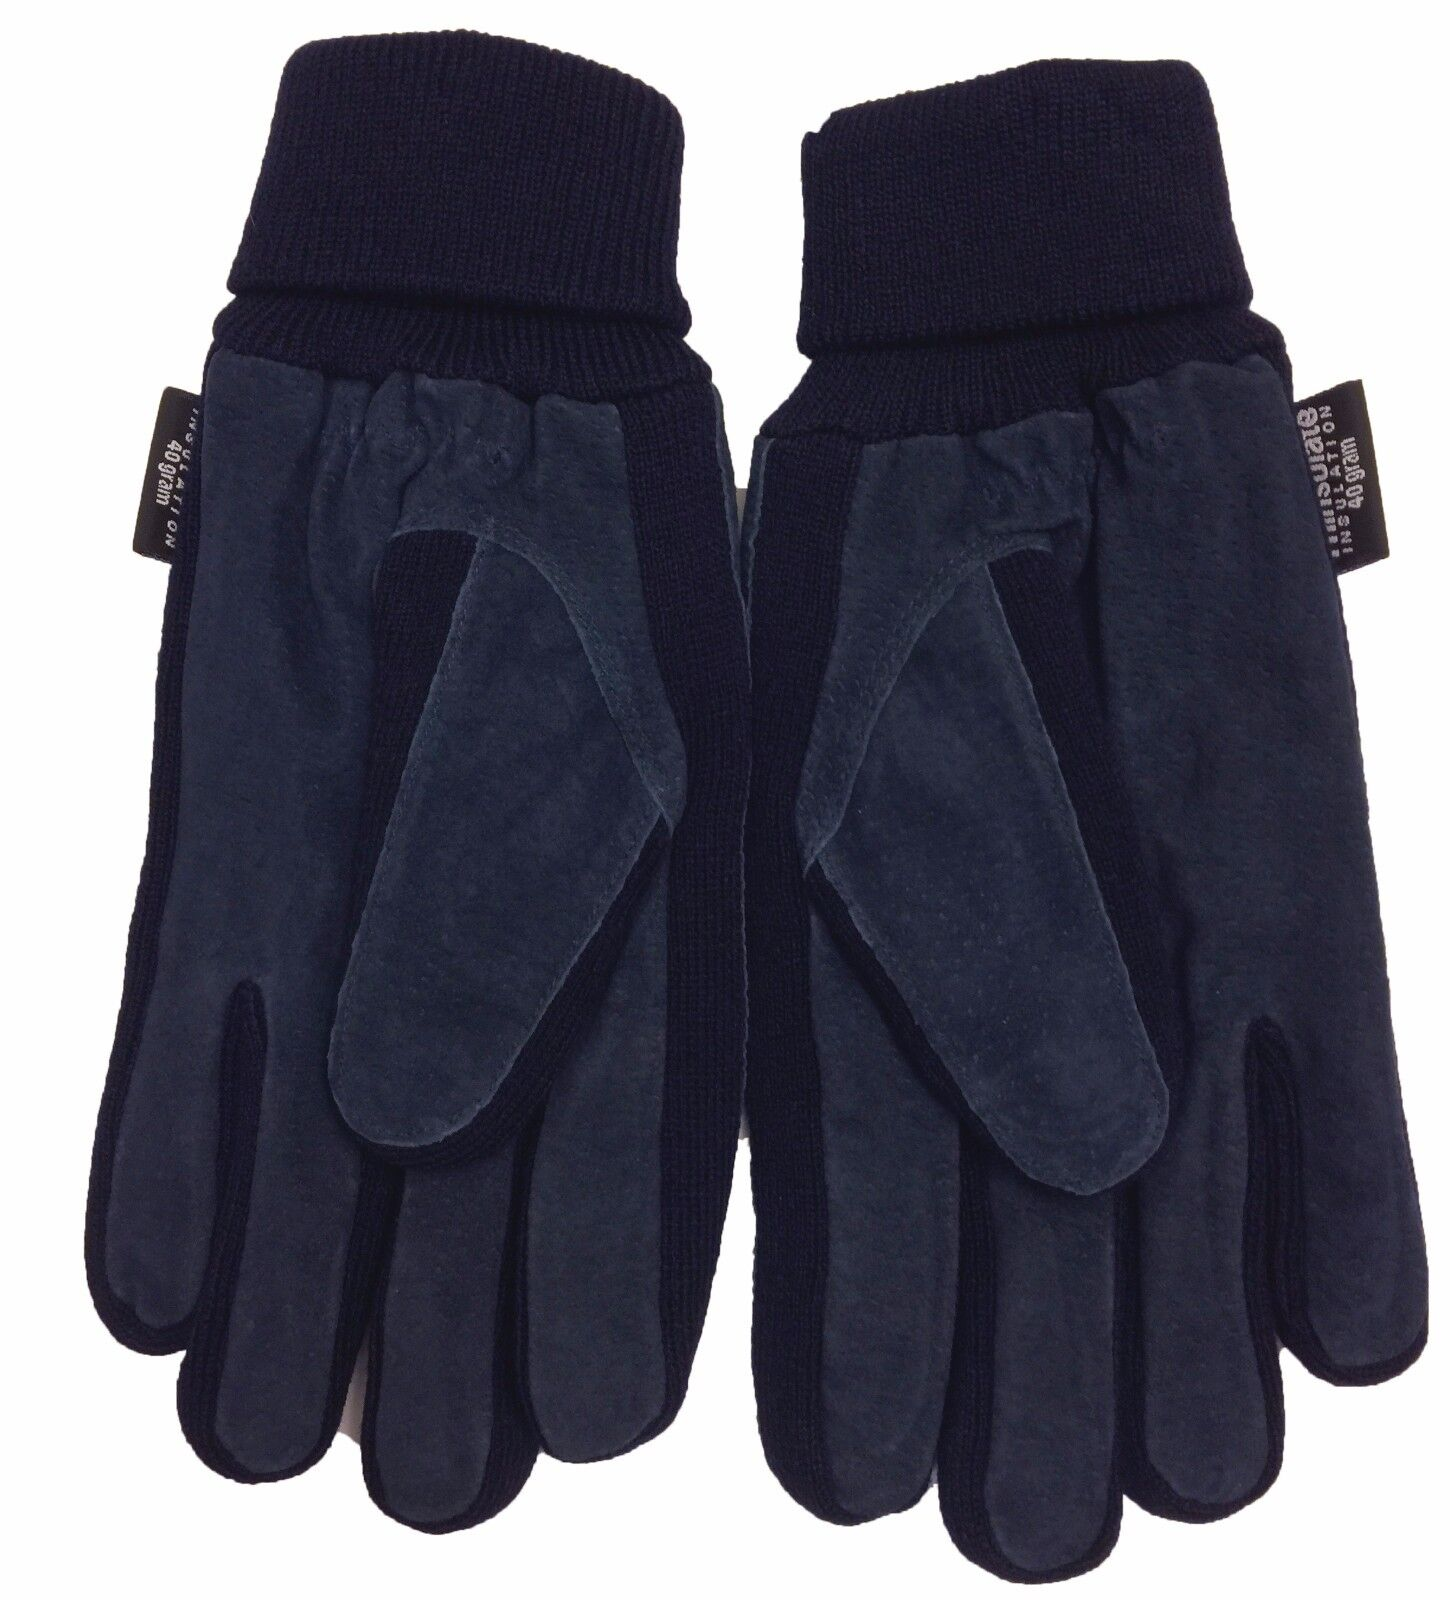 Thinsulate leather driving gloves - Wholesale Lot 12 Pcs 3m Leather Thinsulate Insulation Suede Driving Gloves